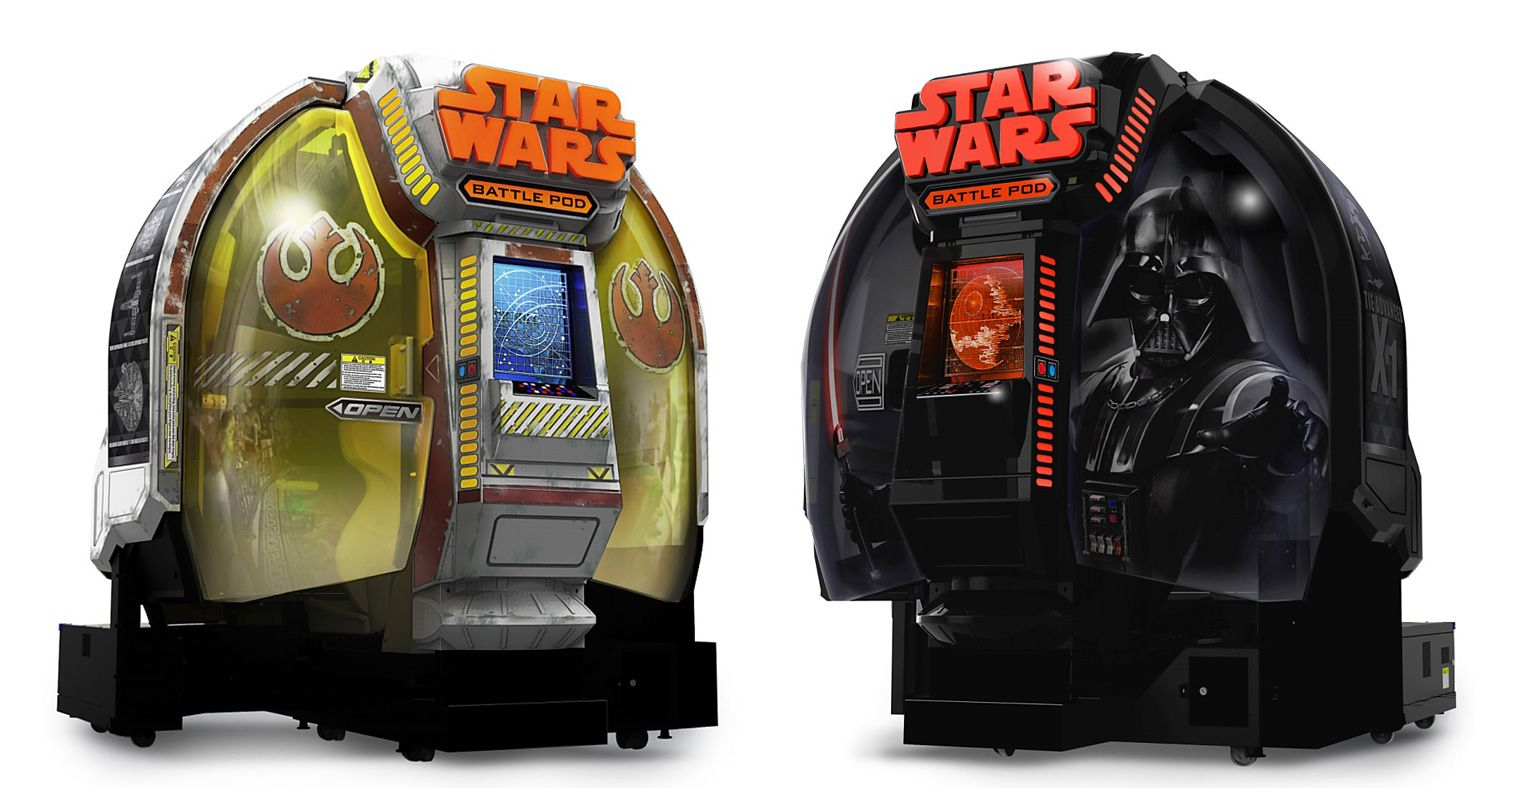 star wars battle pod home version of the arcade game can be yours for  35 000 vg247 xbox one controller service manual xbox one owners manual download